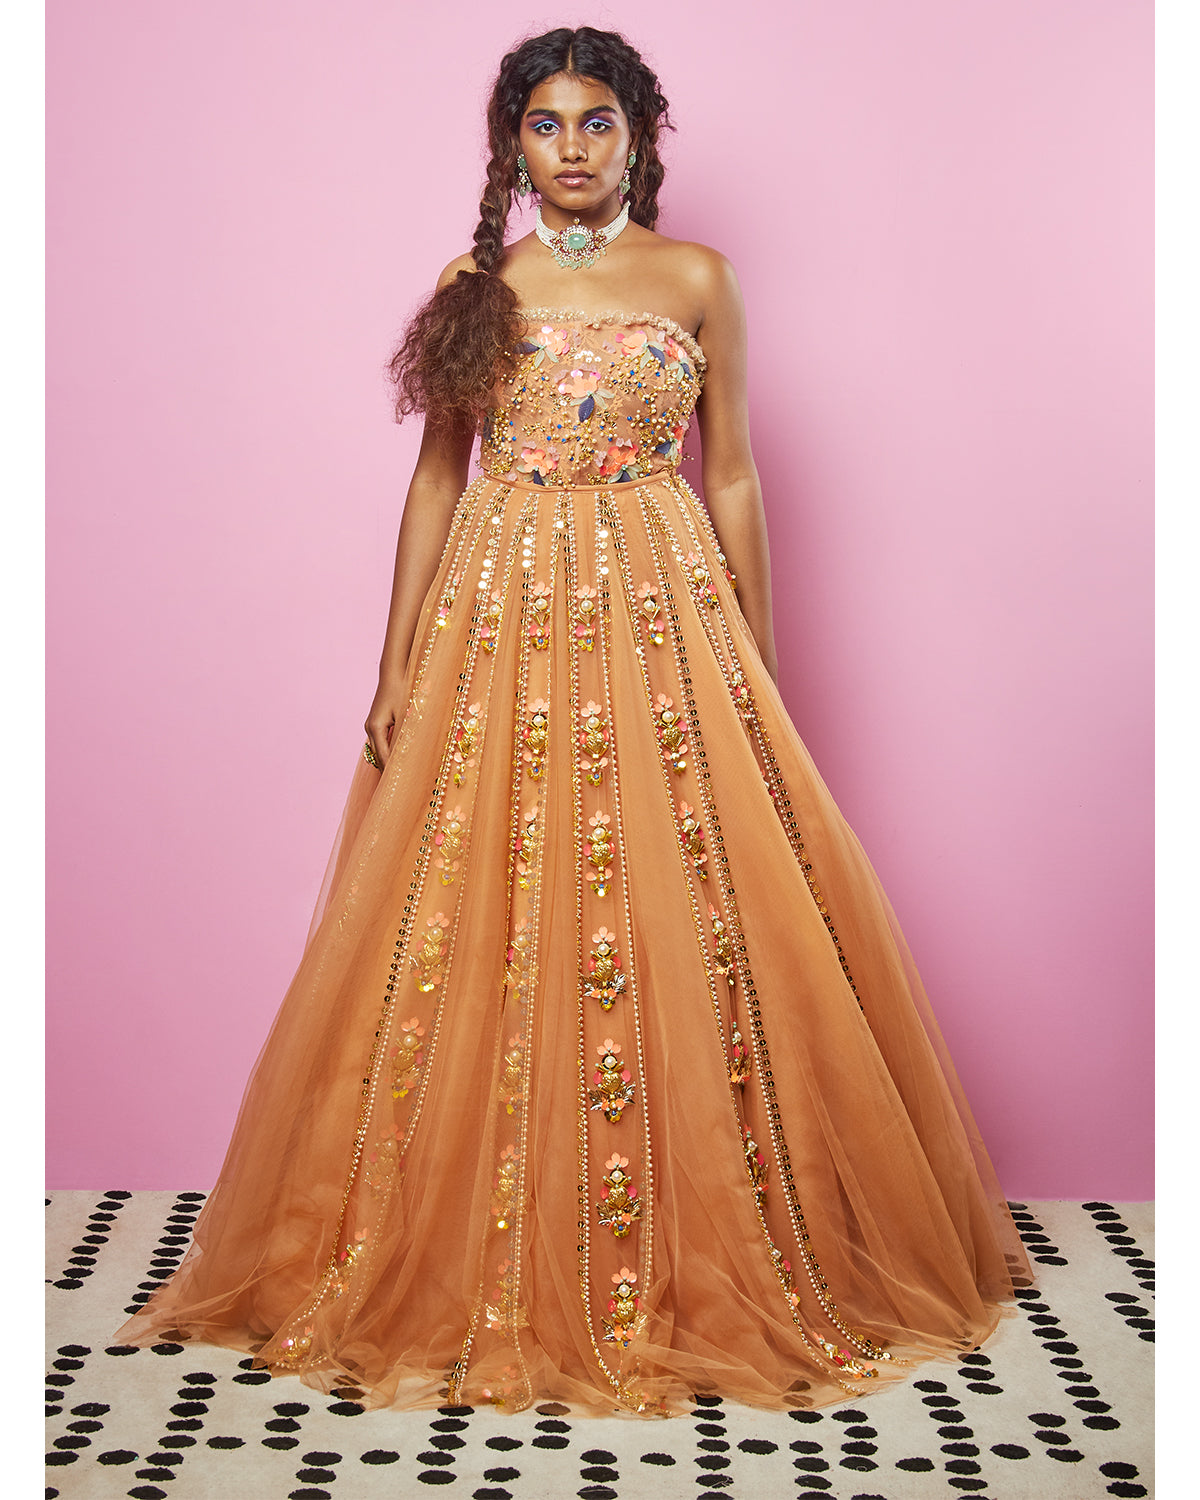 Biscuit Nude Tulle Lehenga | Papa Don't Preach